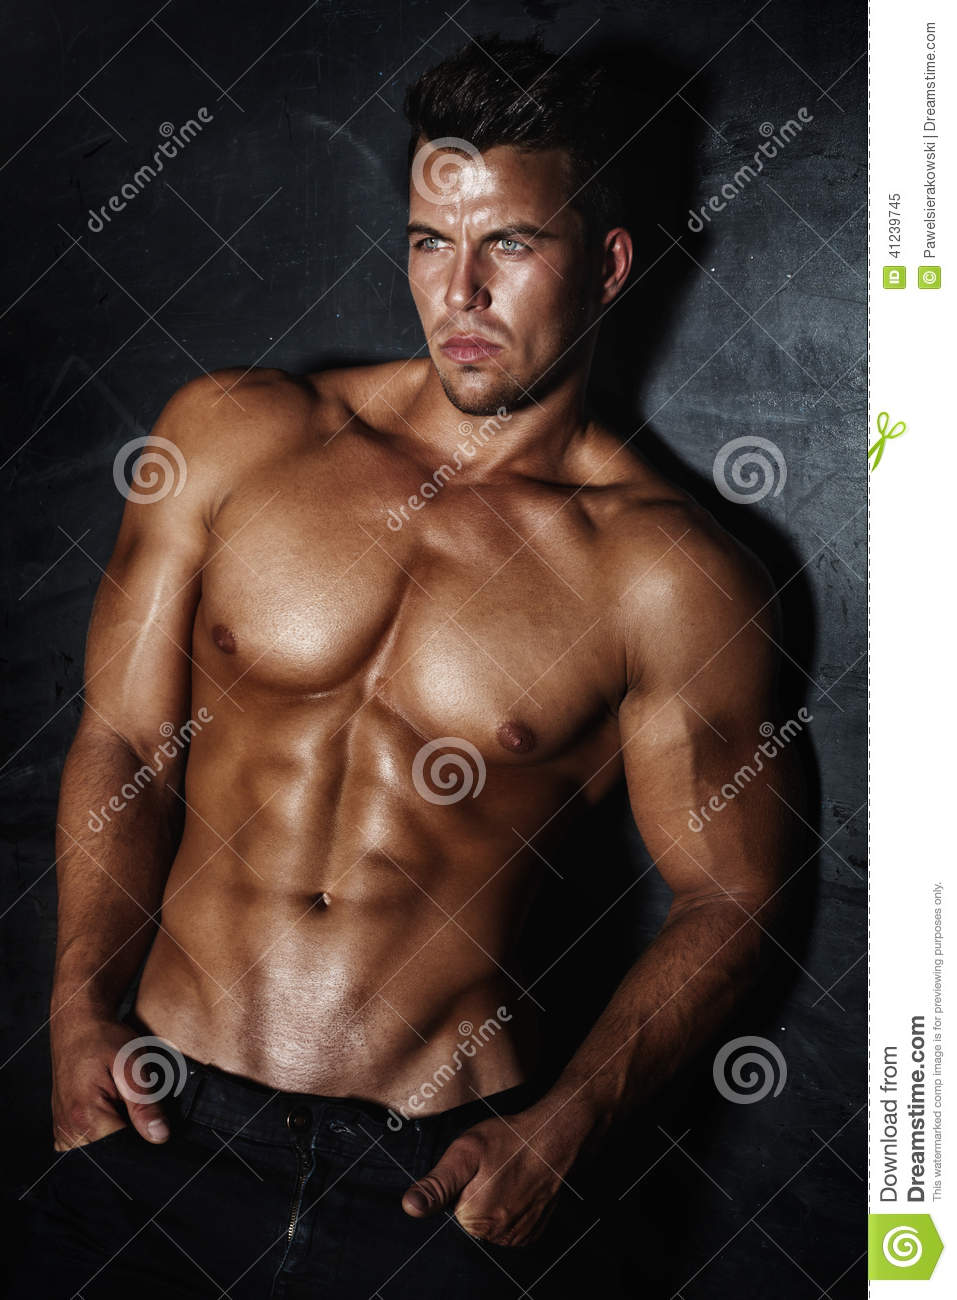 Pose Belle Dhomme Image Stock Image Du Homme Muscle 41239745